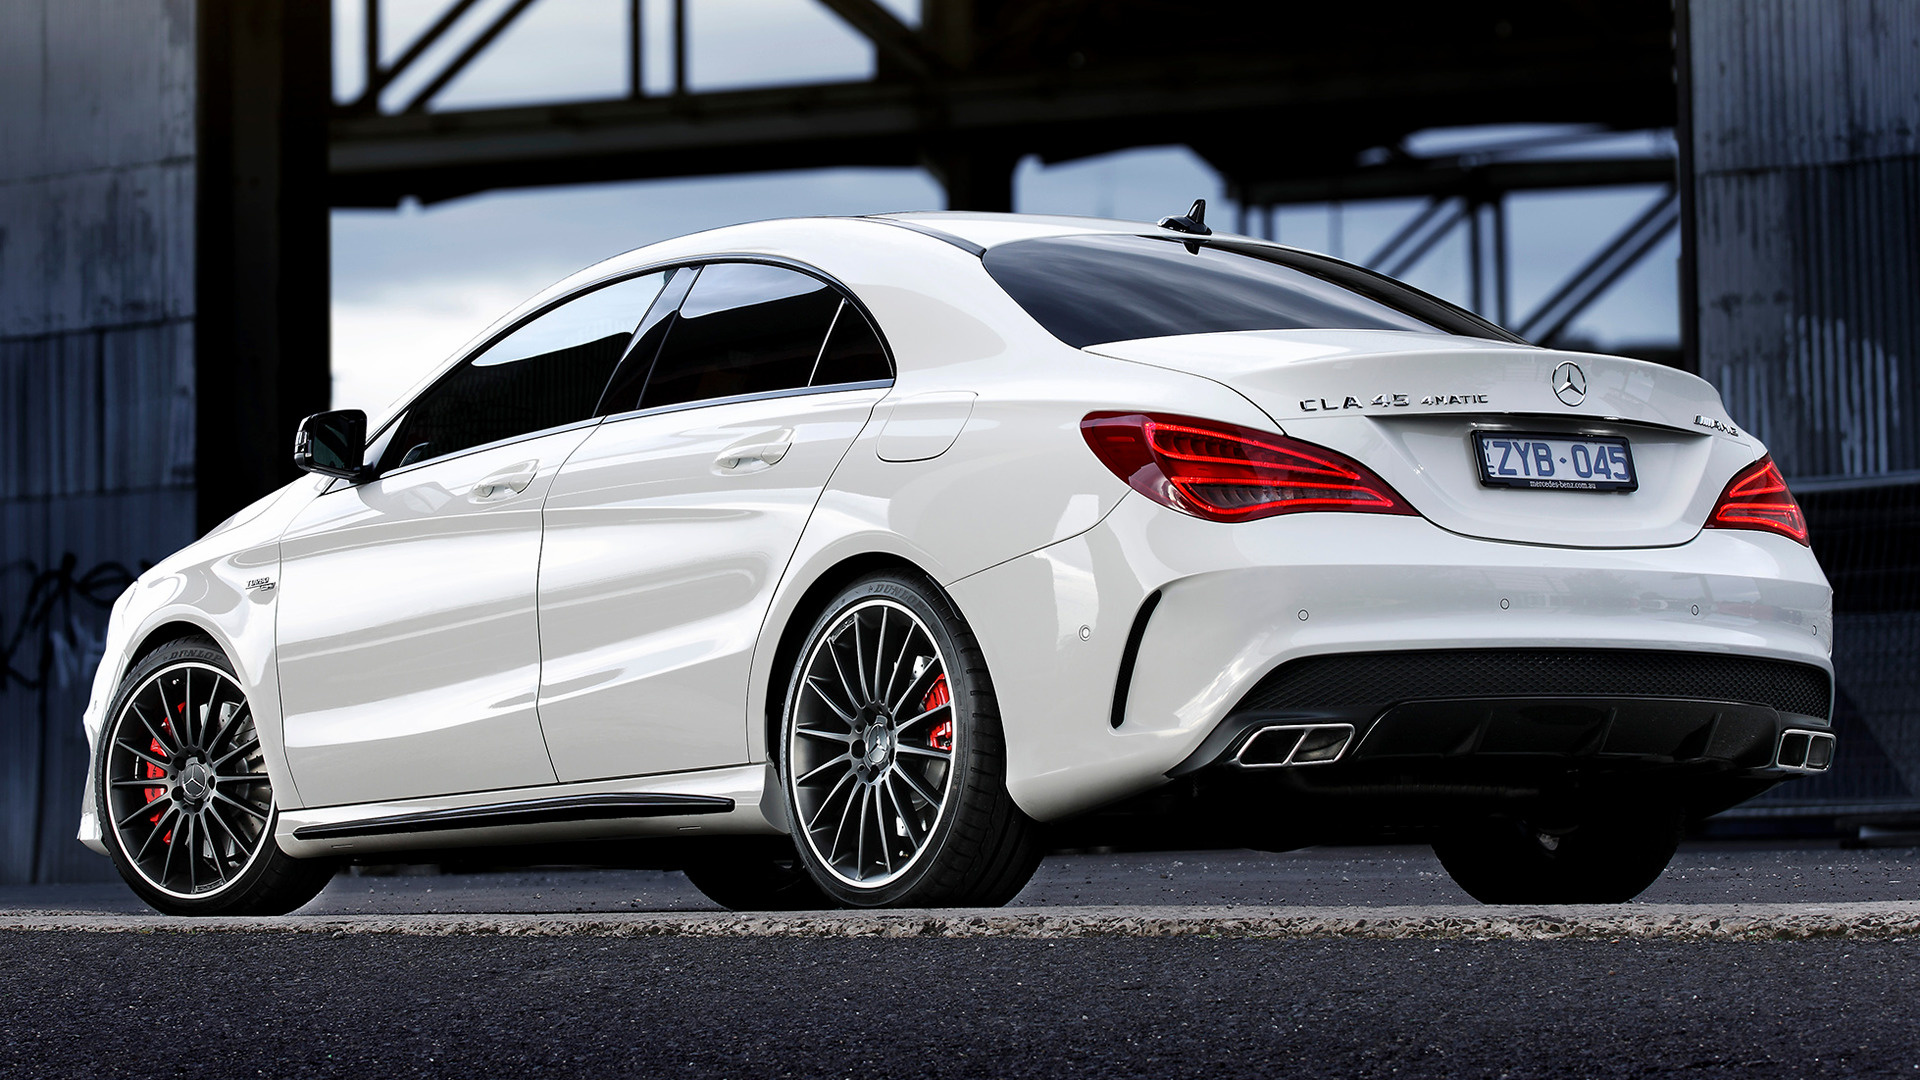 Lincoln Wallpaper Car Mercedes Benz Cla 45 Amg 2013 Au Wallpapers And Hd